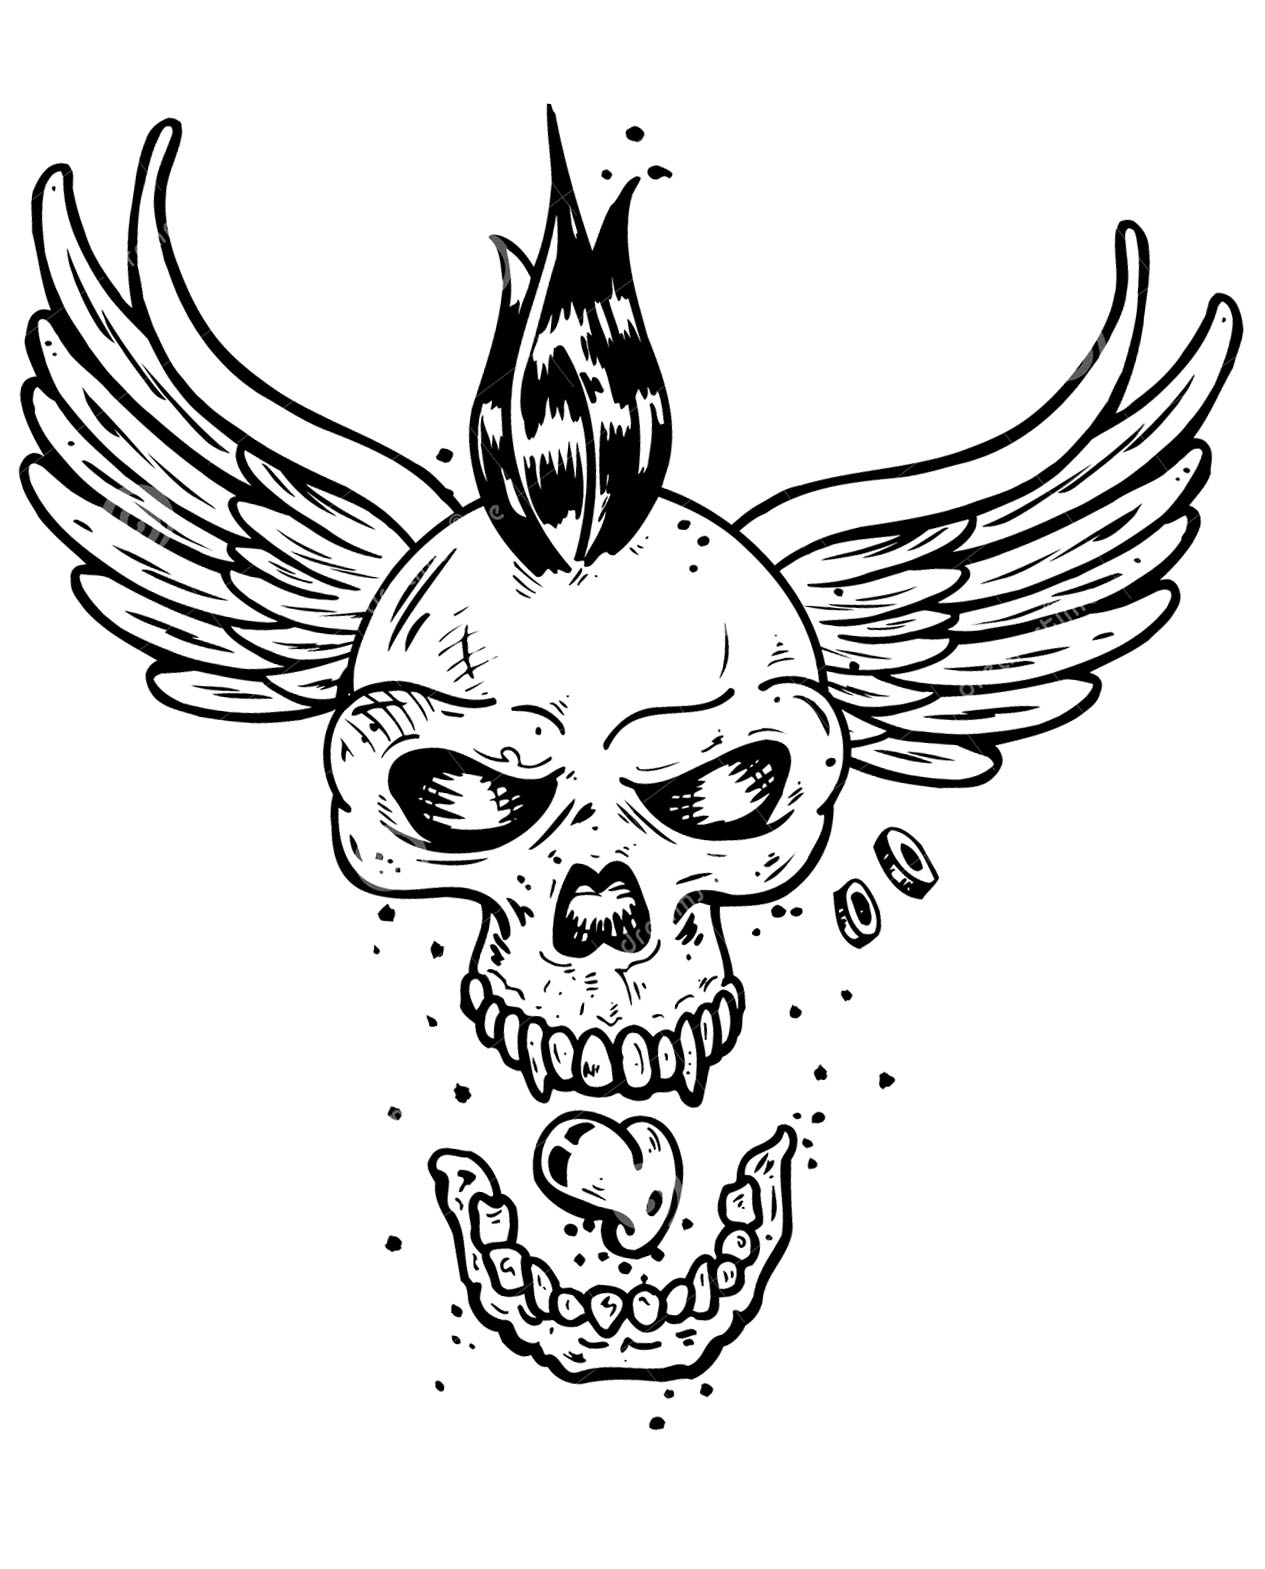 Skull - Coloring Pages for Adults - Page 2